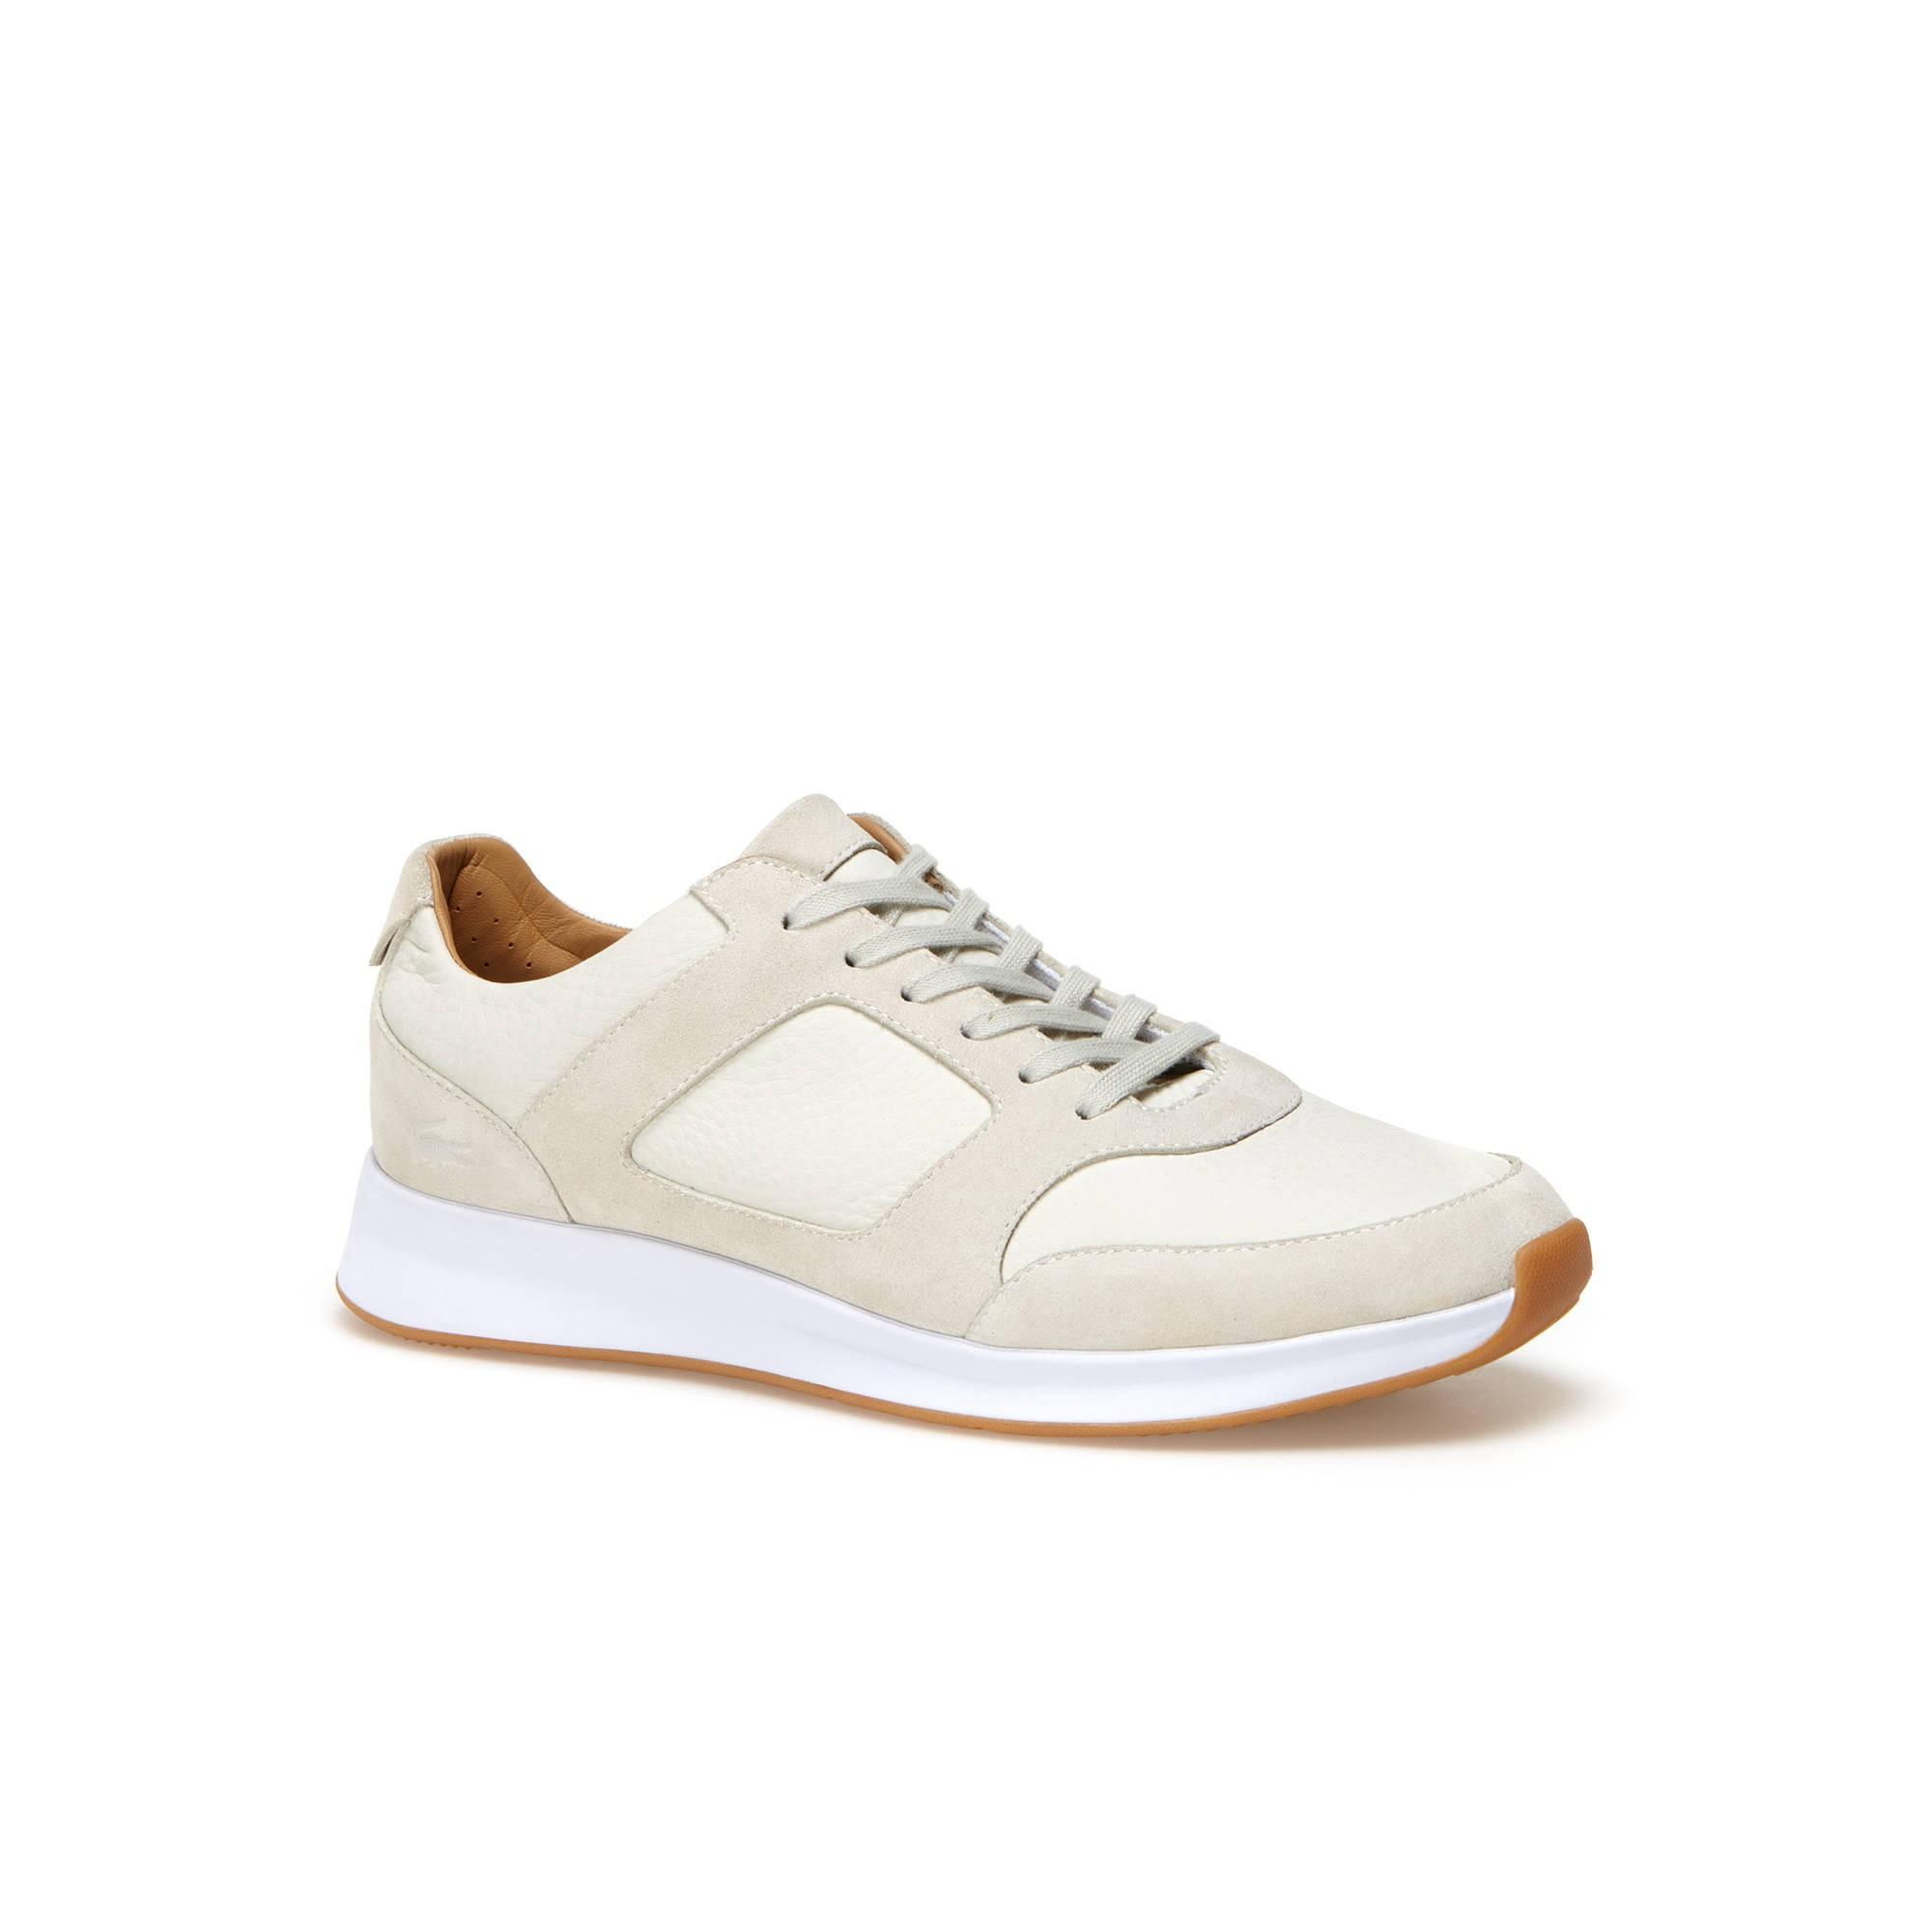 Lacoste Men S Jogger Nappa Leather Sneakers - Off White  9c54a7d05